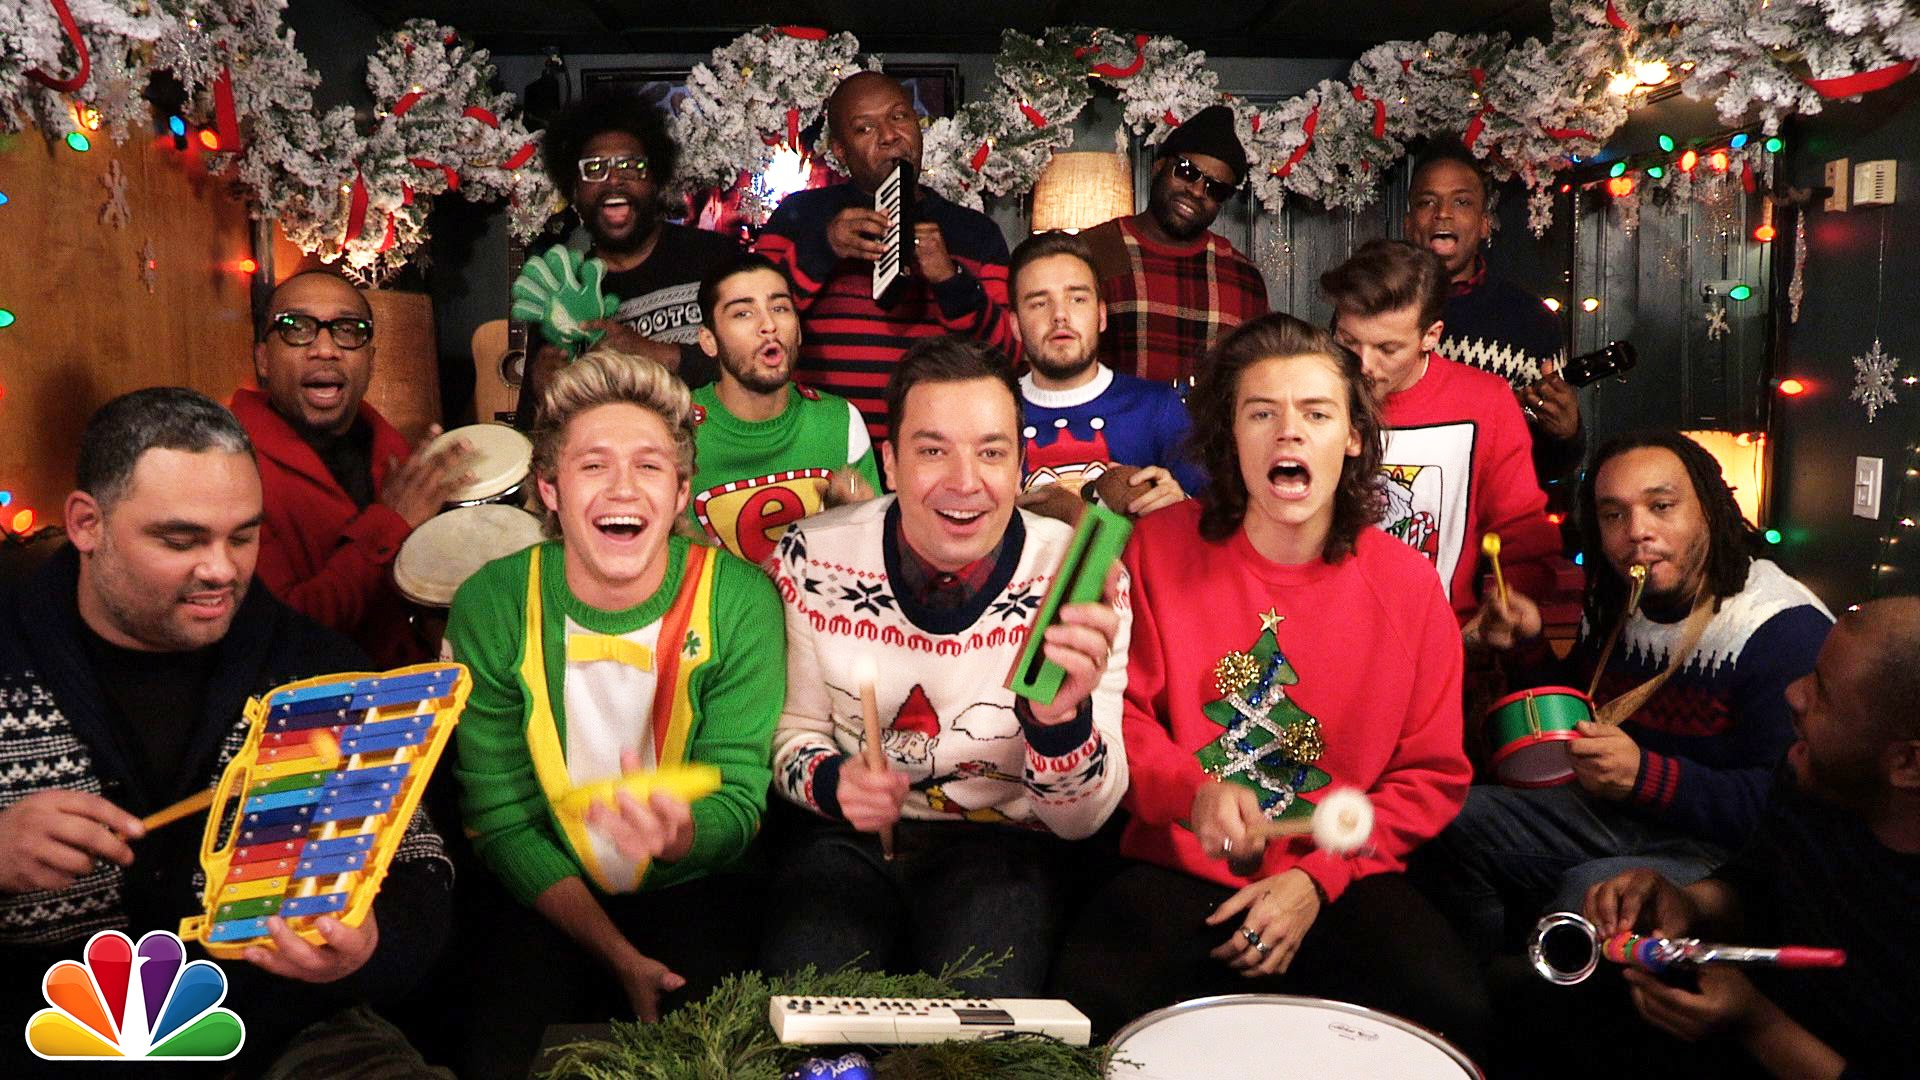 Jimmy Fallon, One Direction, and The Roots Play 'Santa Claus Is ...